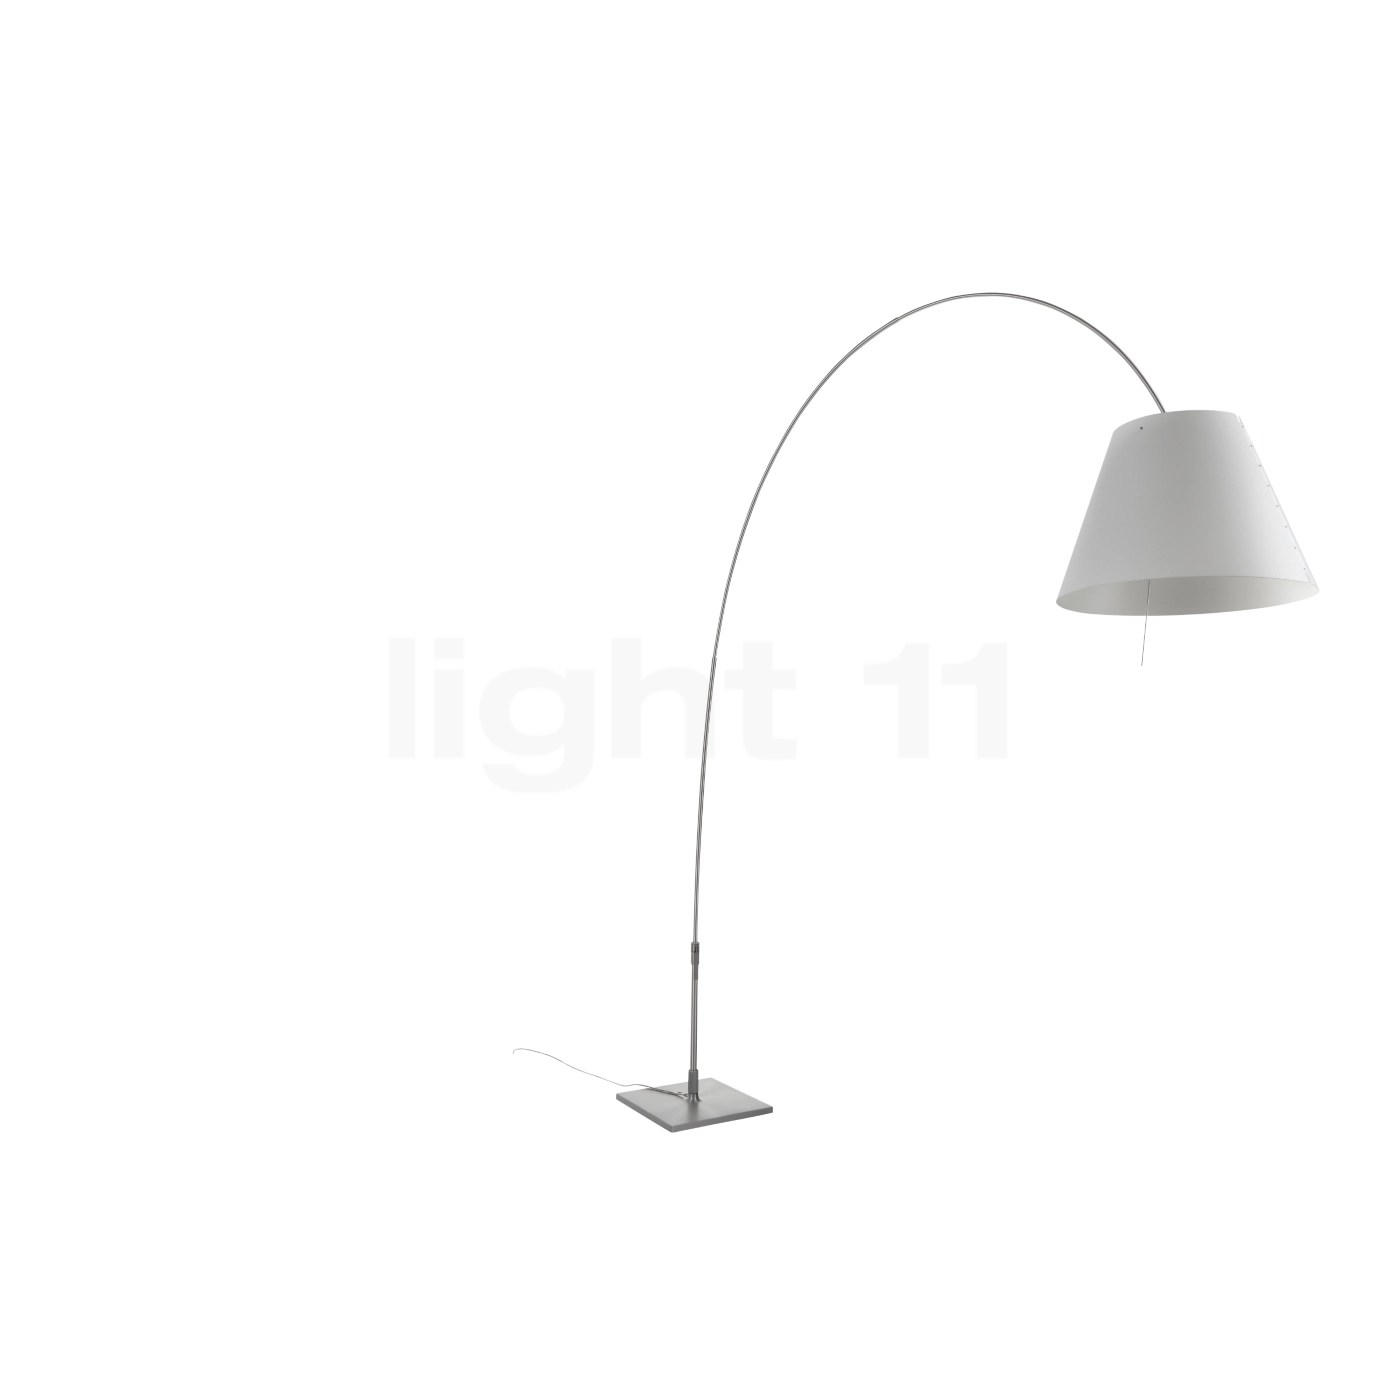 Bogenlampe Costanza Buy Luceplan Lady Costanza With Aluminium Stem And Touch Dimmer At